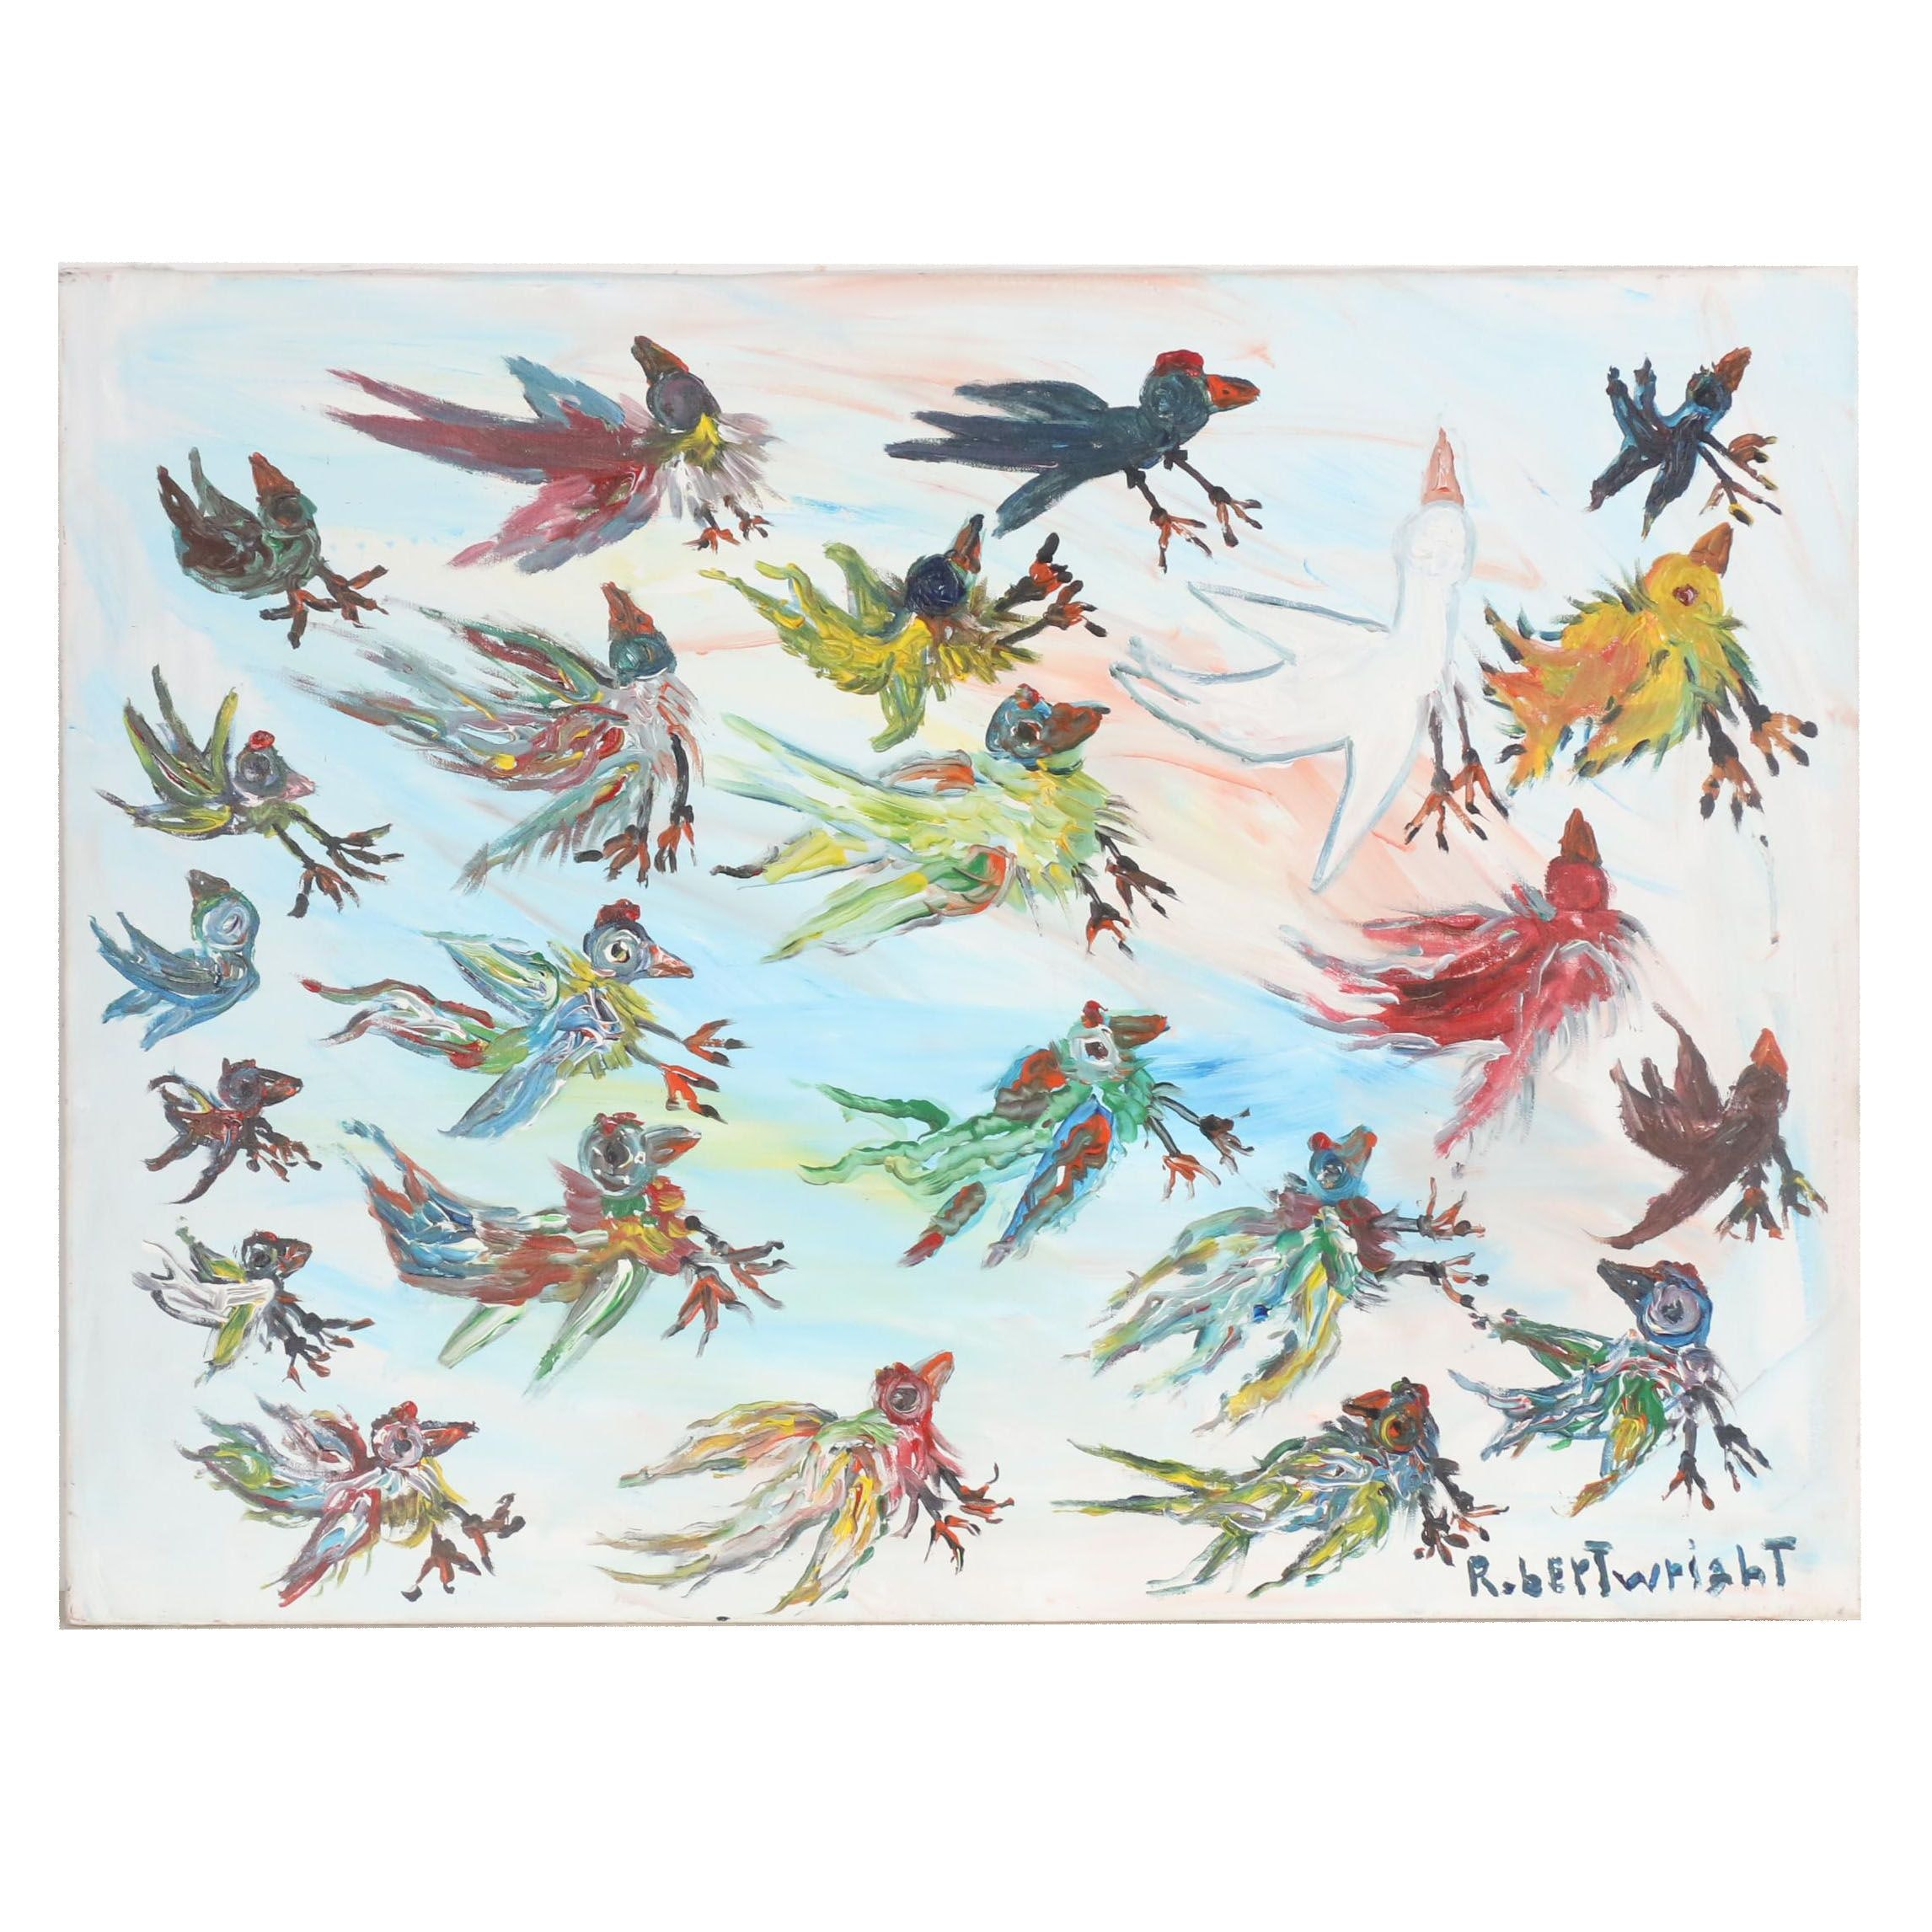 Robert Wright Folk Acrylic Painting of Stylized Birds